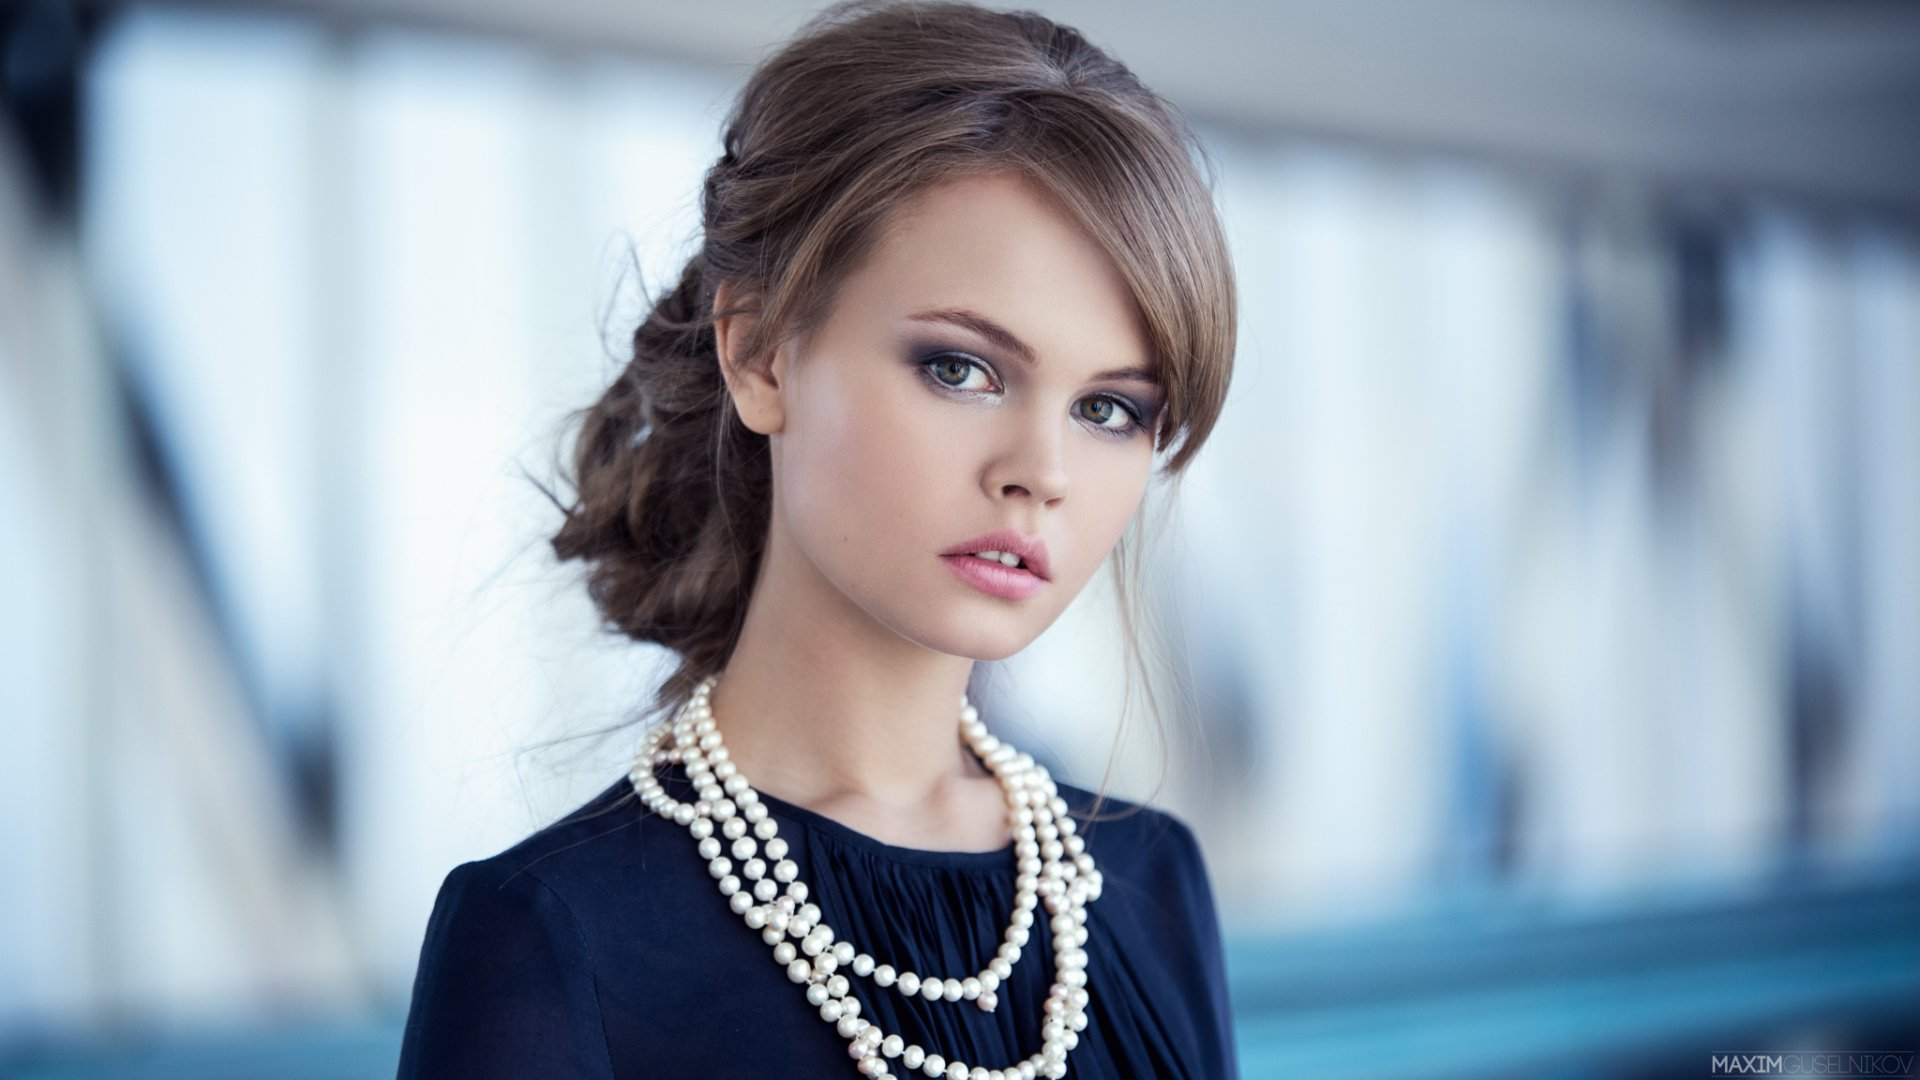 Women - Anastasiya Scheglova  Brunette Bokeh Necklace Green Eyes Model Woman Wallpaper